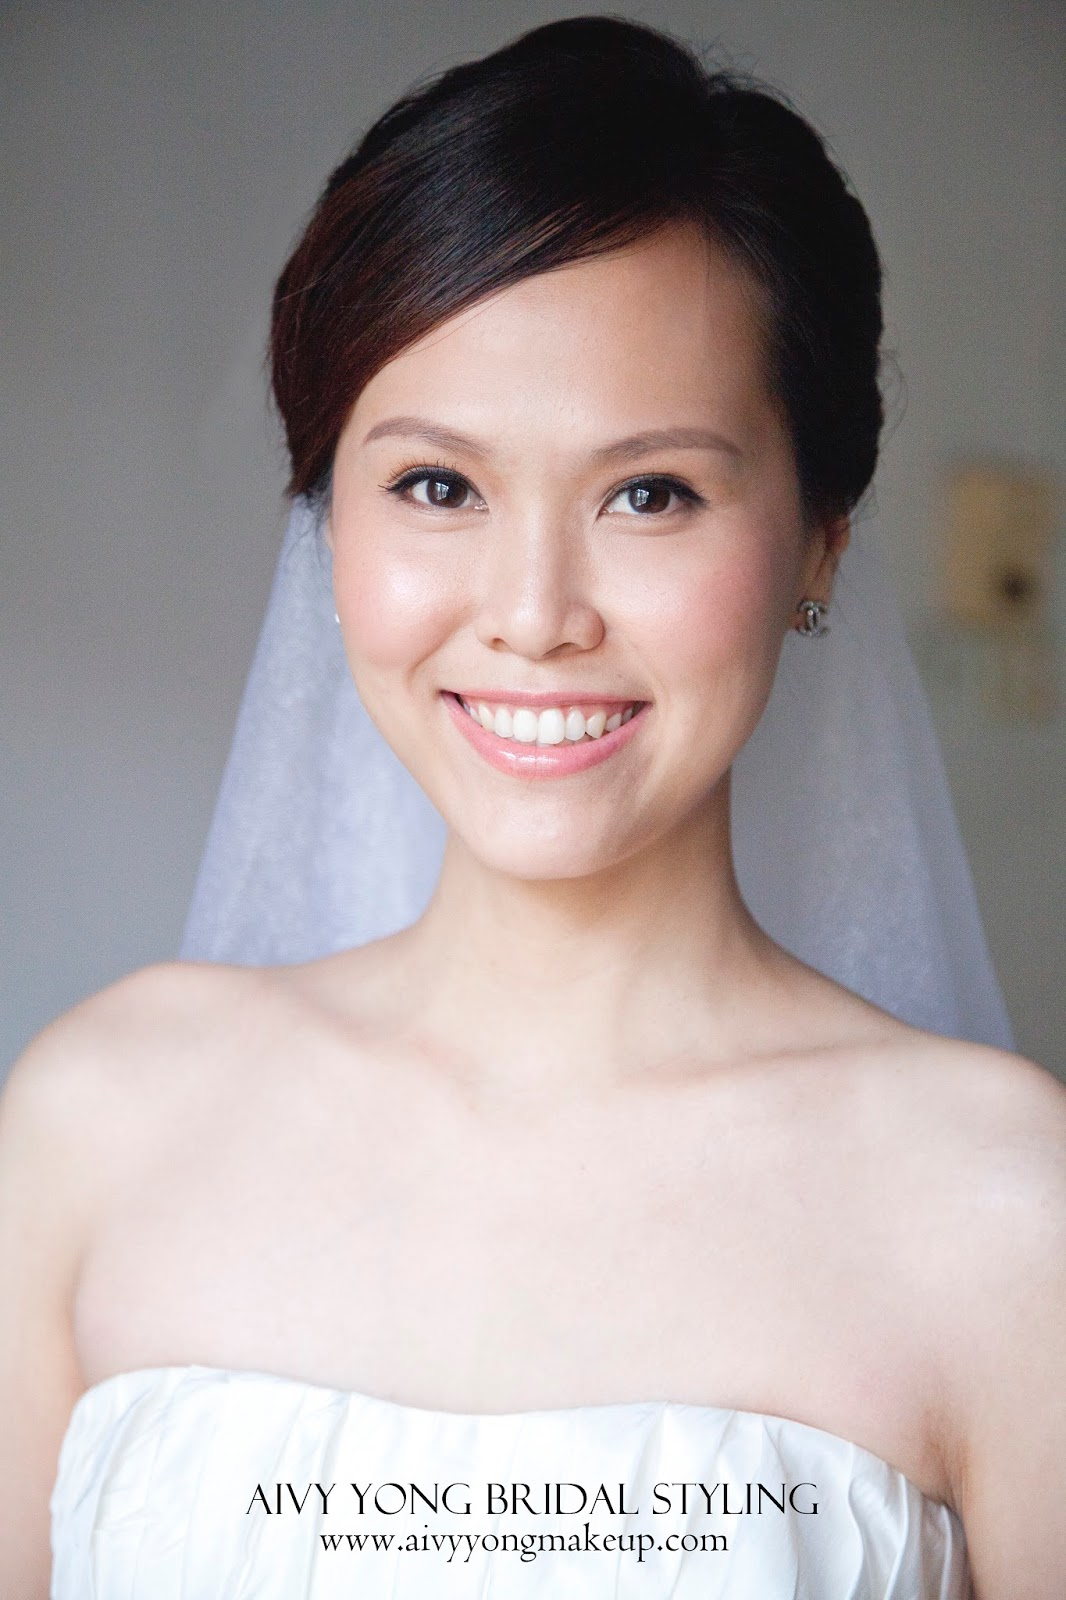 Airbrush Vs Traditional Wedding Makeup : Aivy Yong air brush bridal make up - professional makeup ...